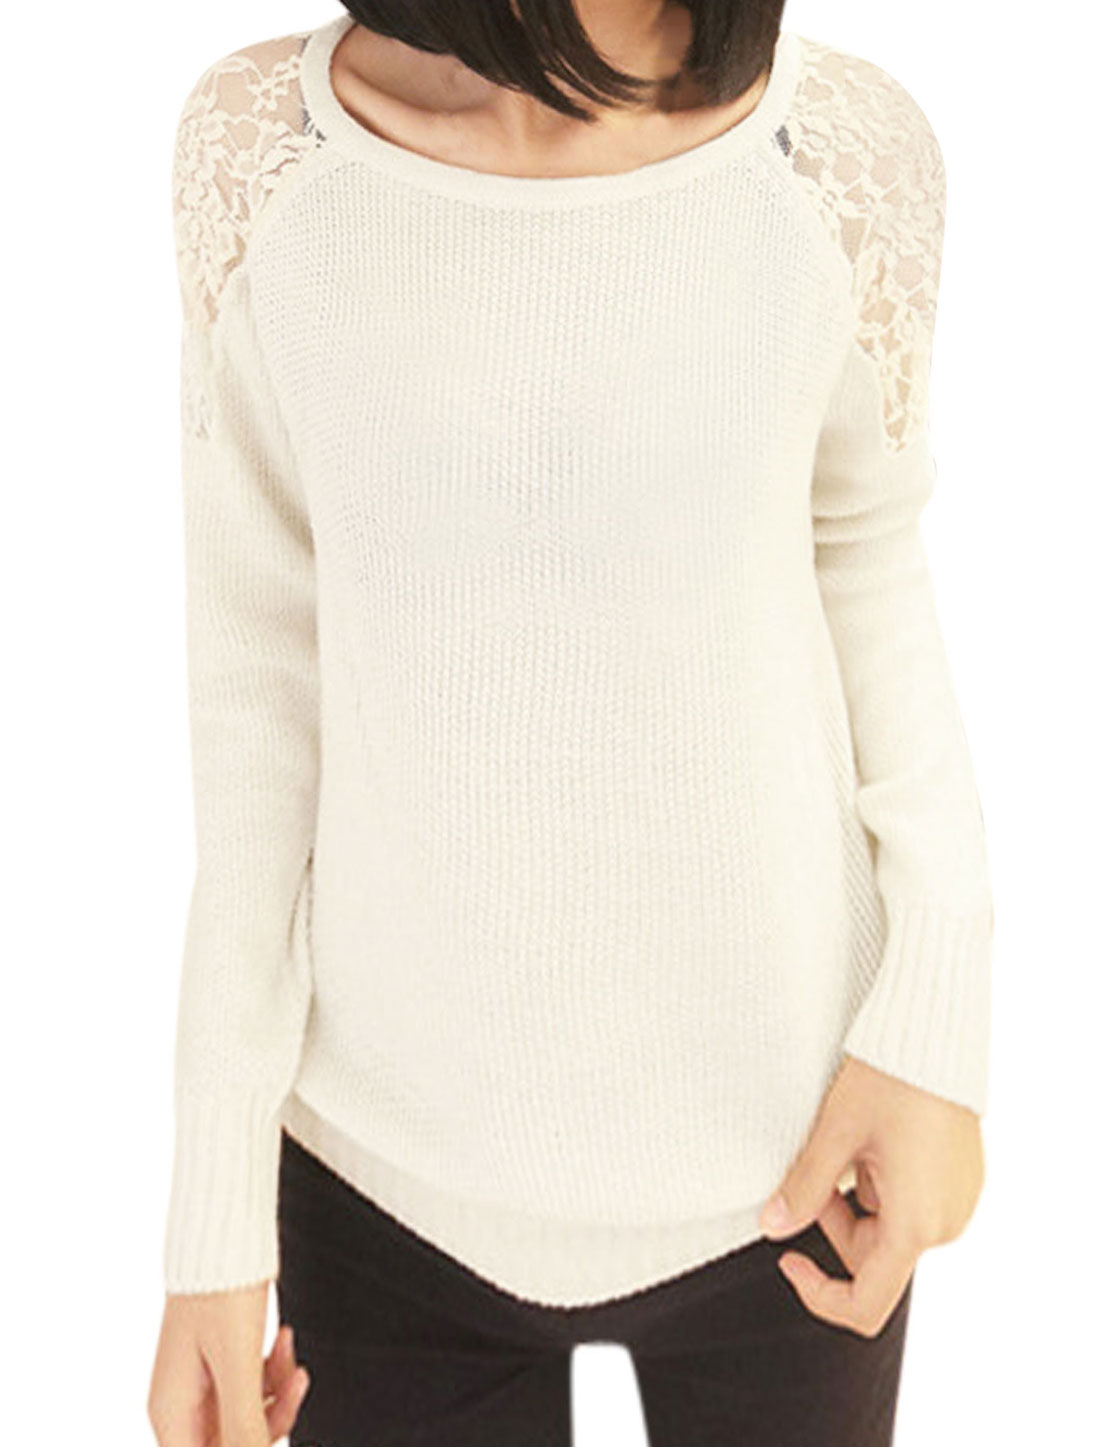 Ladies Pullover Lace Panel Round Neck Beige Sweater XS